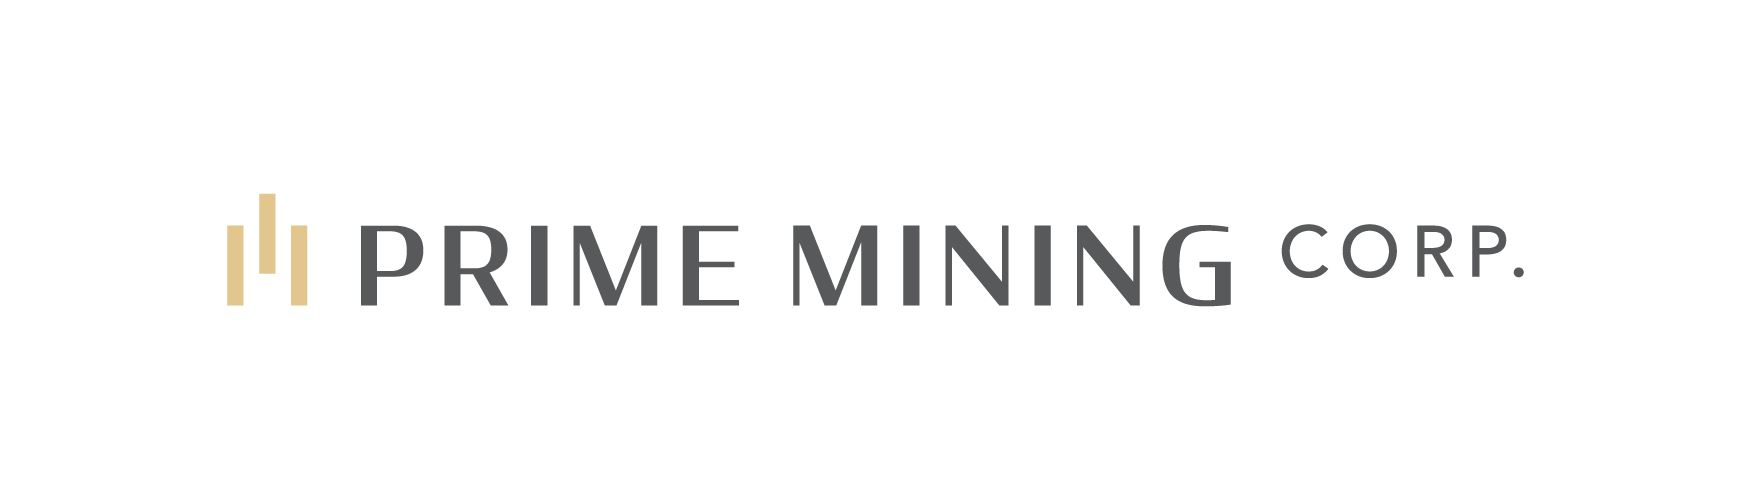 Prime Mining Reports 39.0 Metres at 6.75 gpt Gold and 58